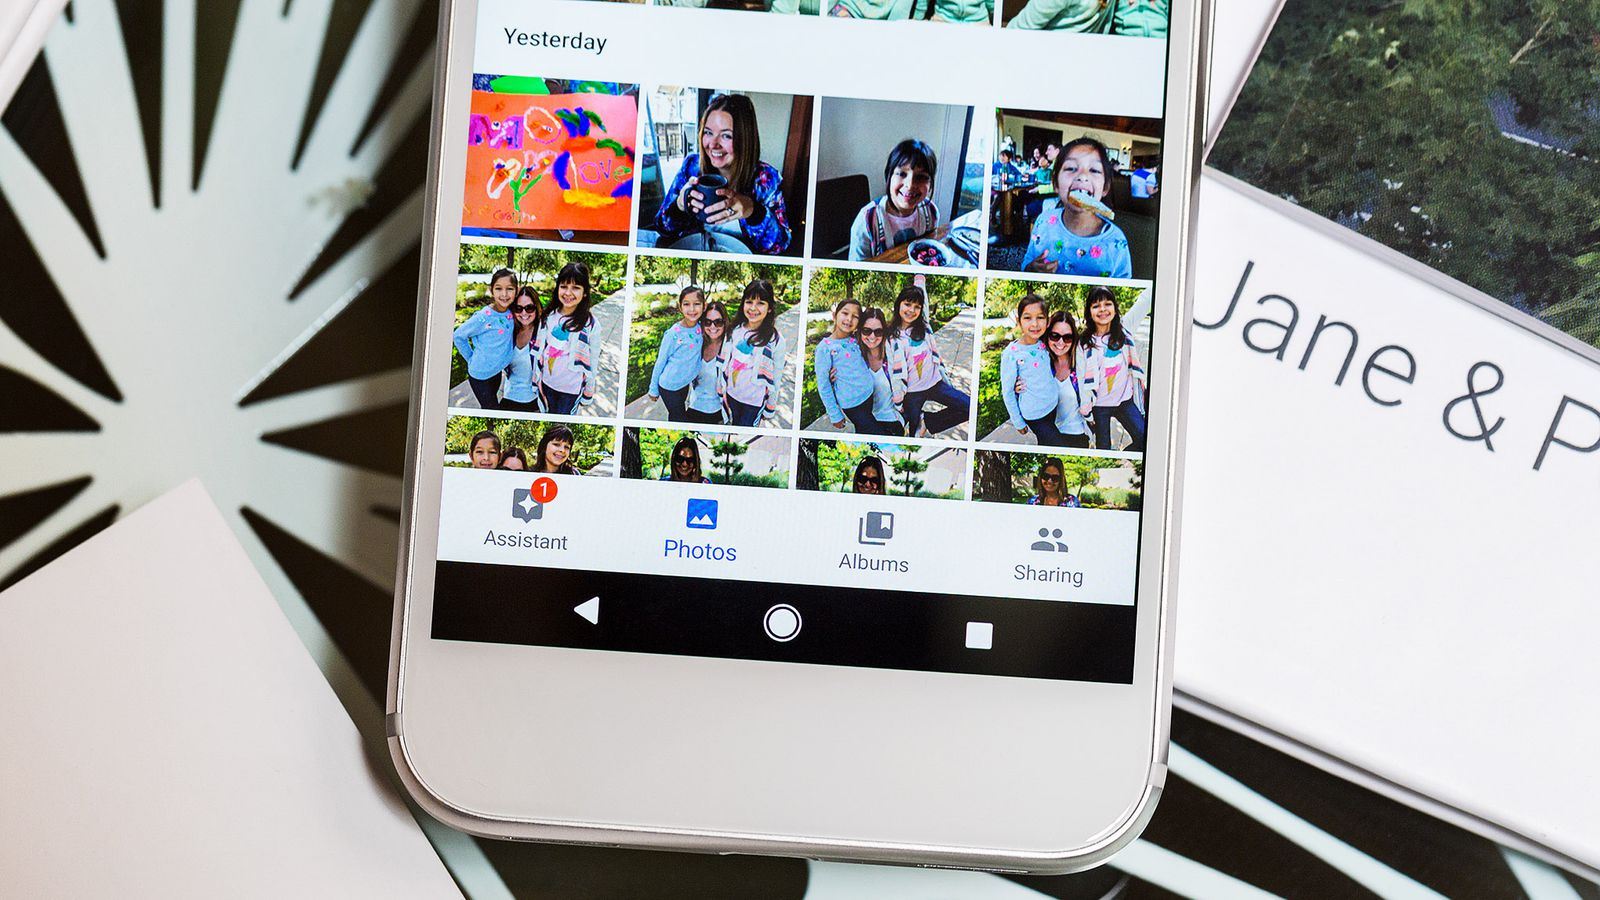 Google Photos now makes it easy to hide your nudes